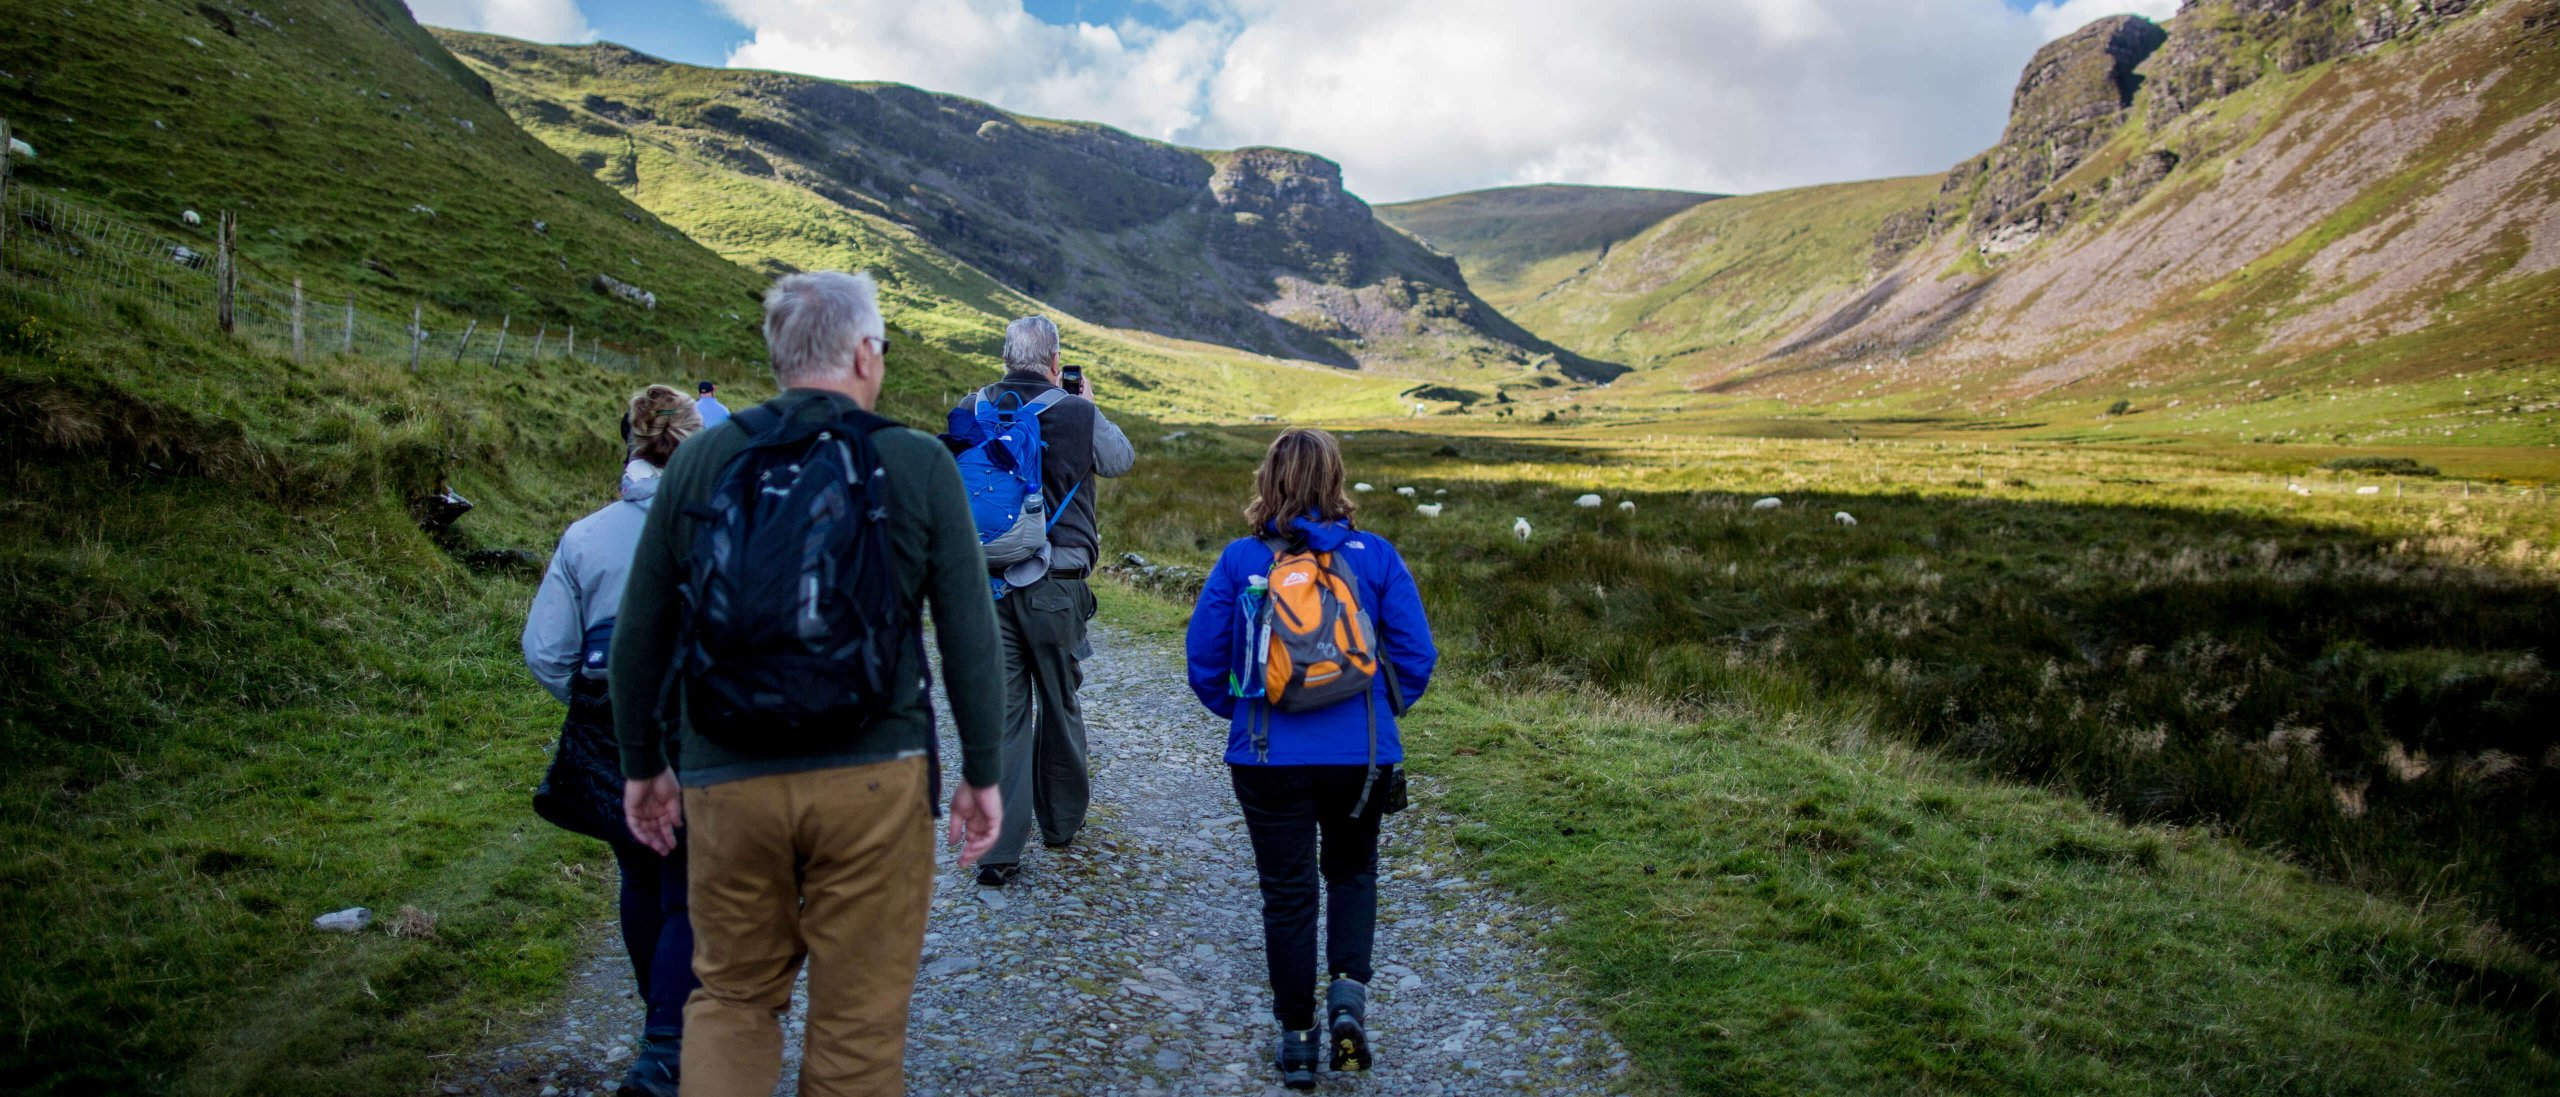 Group hiking in Annascaul valley, Dingle peninsula